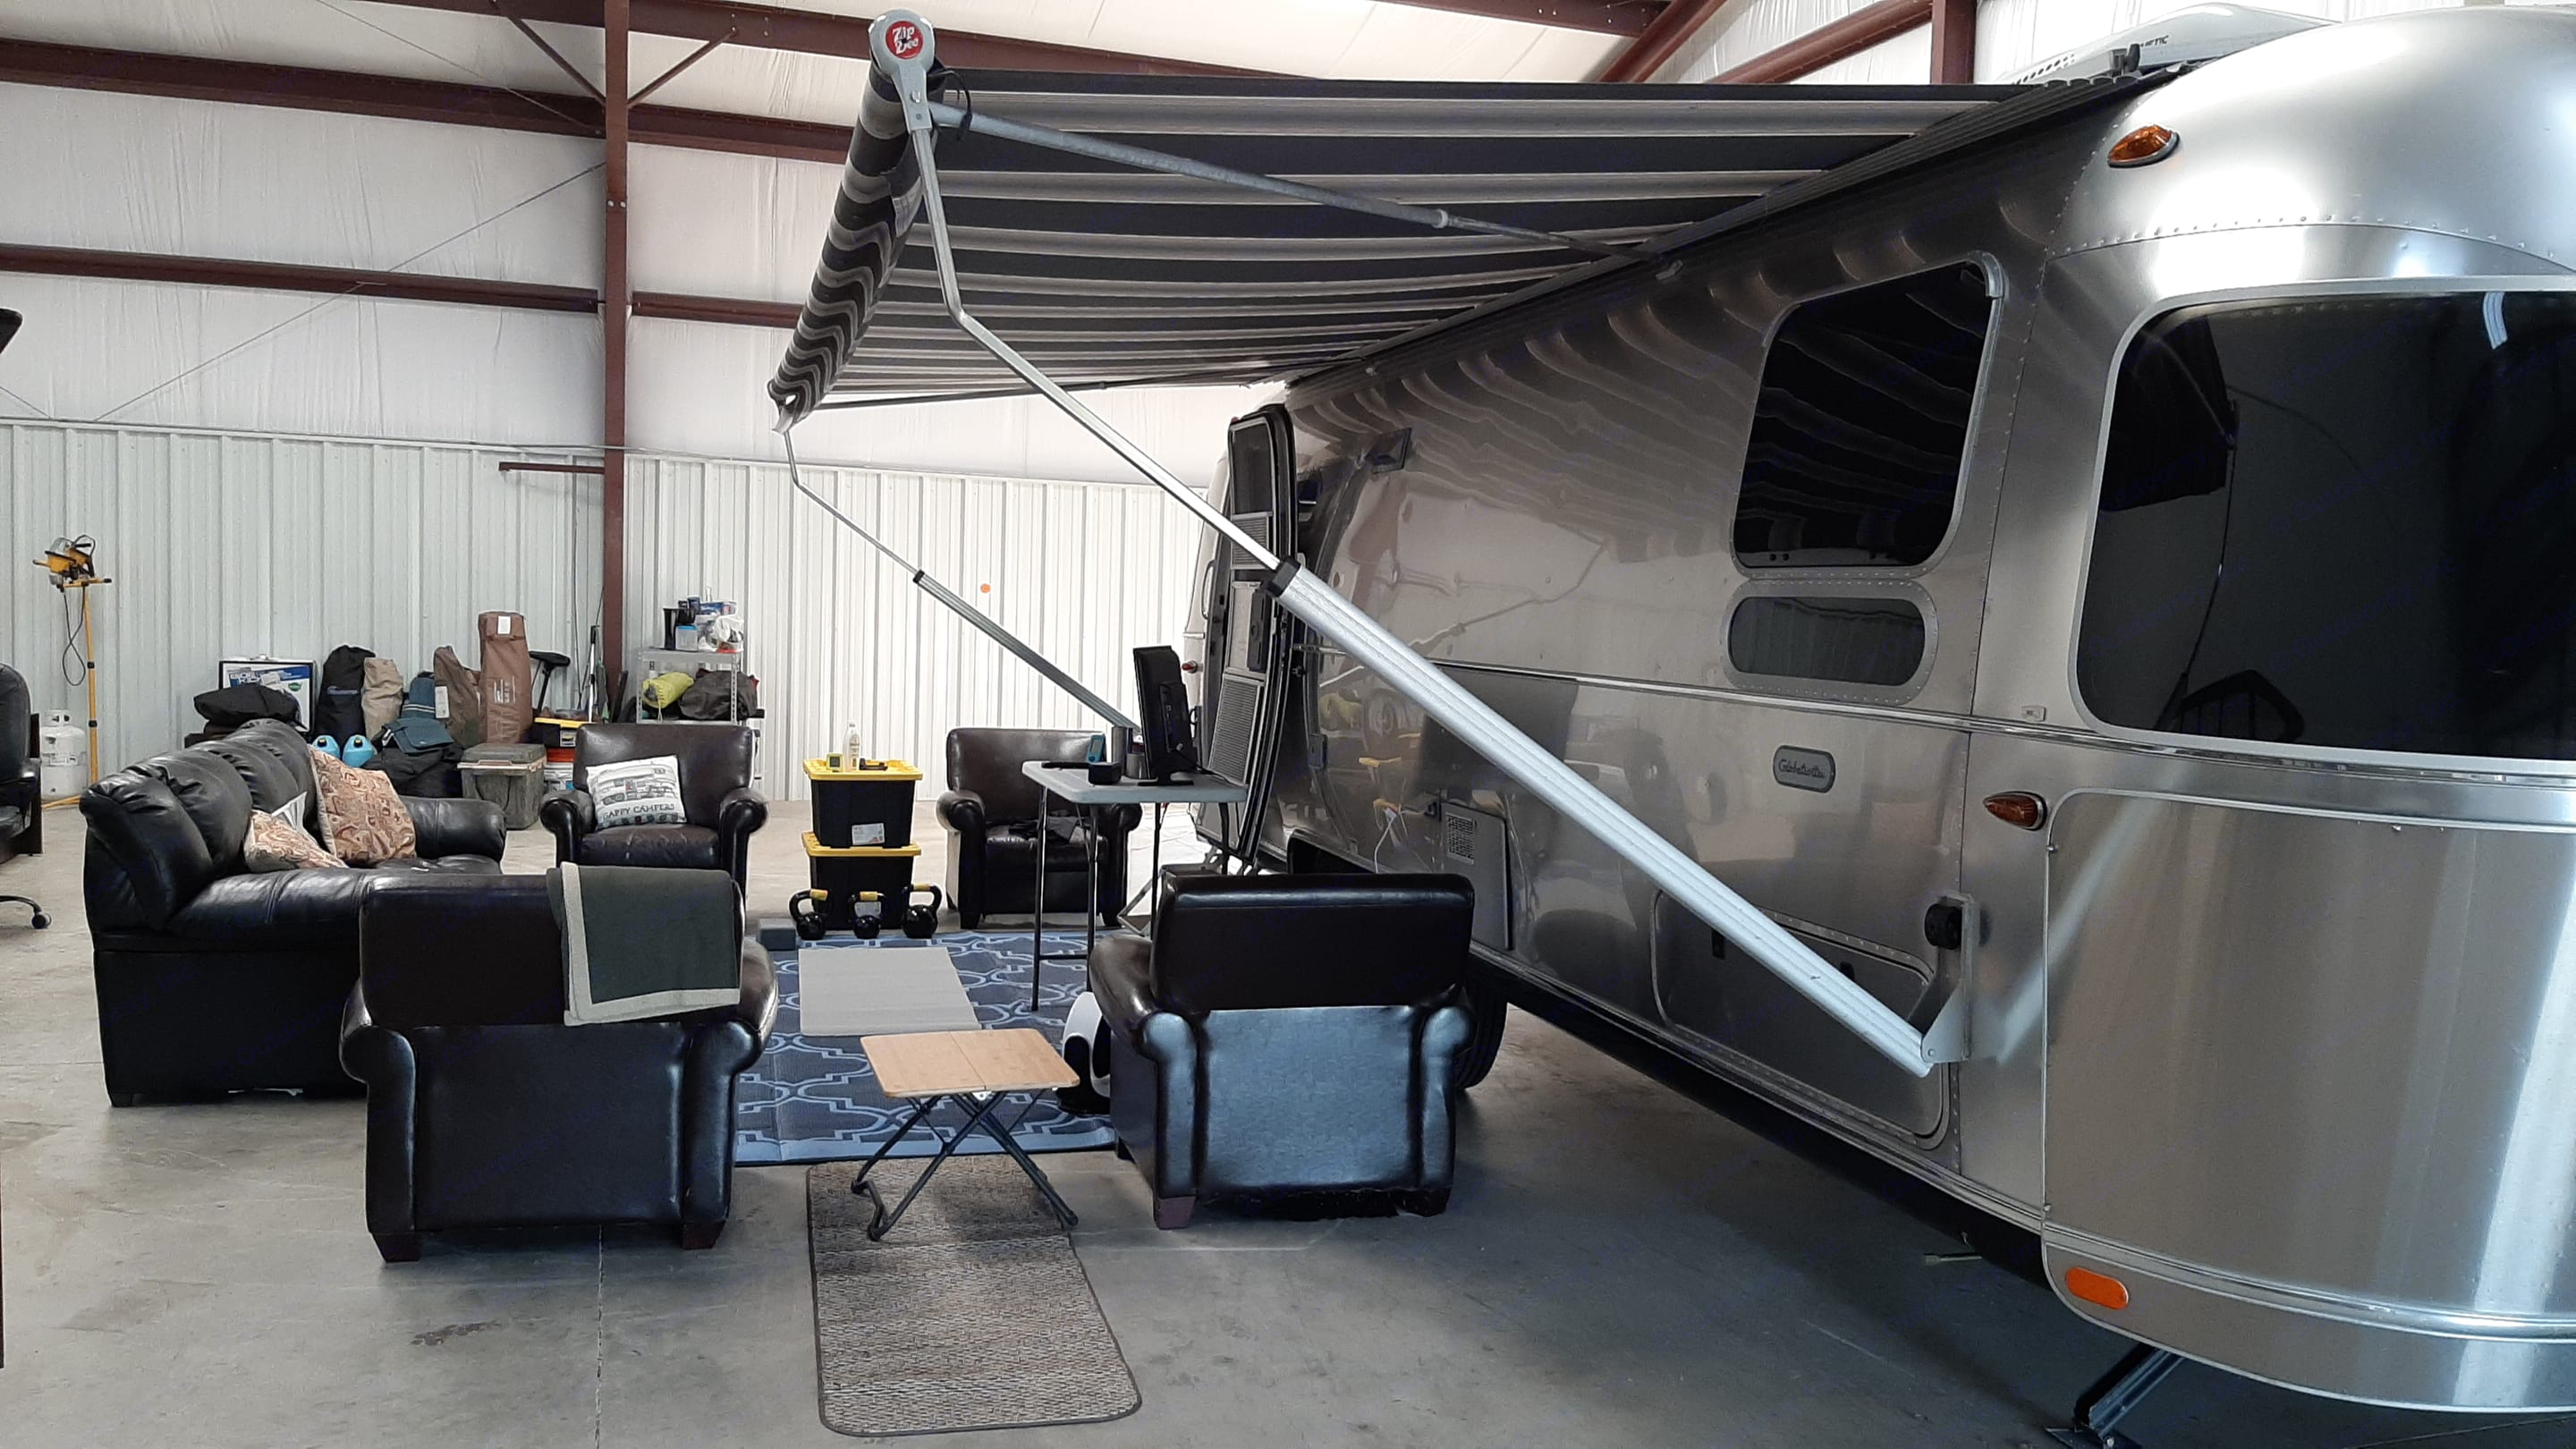 Displays deployed automatic awning stored in man cave. Airstream Globetrotter 2018